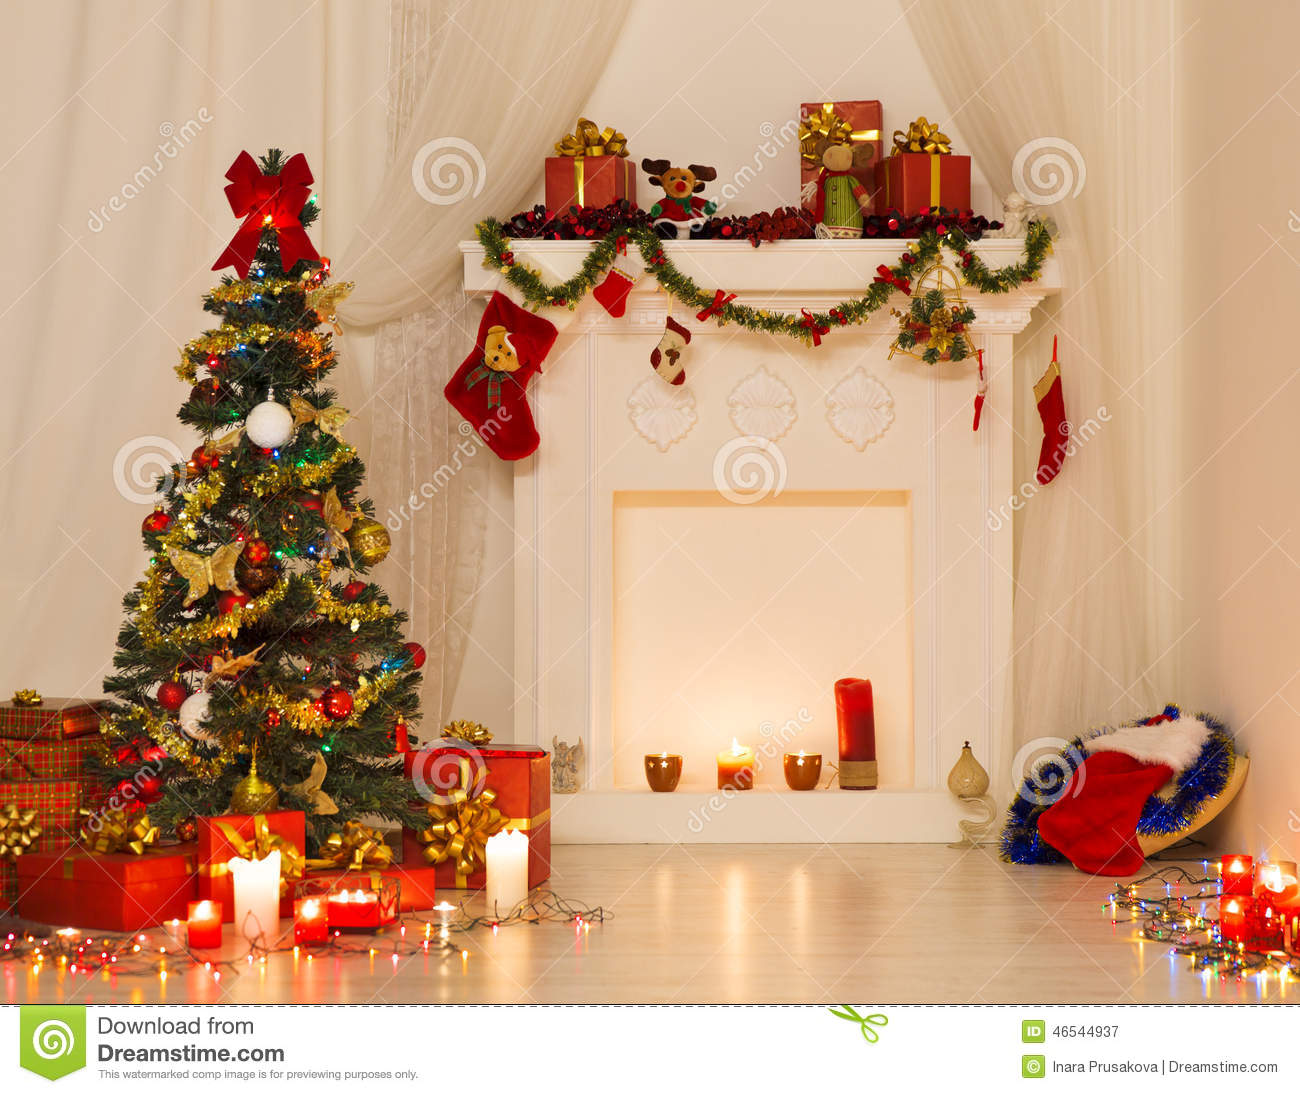 Christmas room interior design xmas tree decorated by for Xmas room design